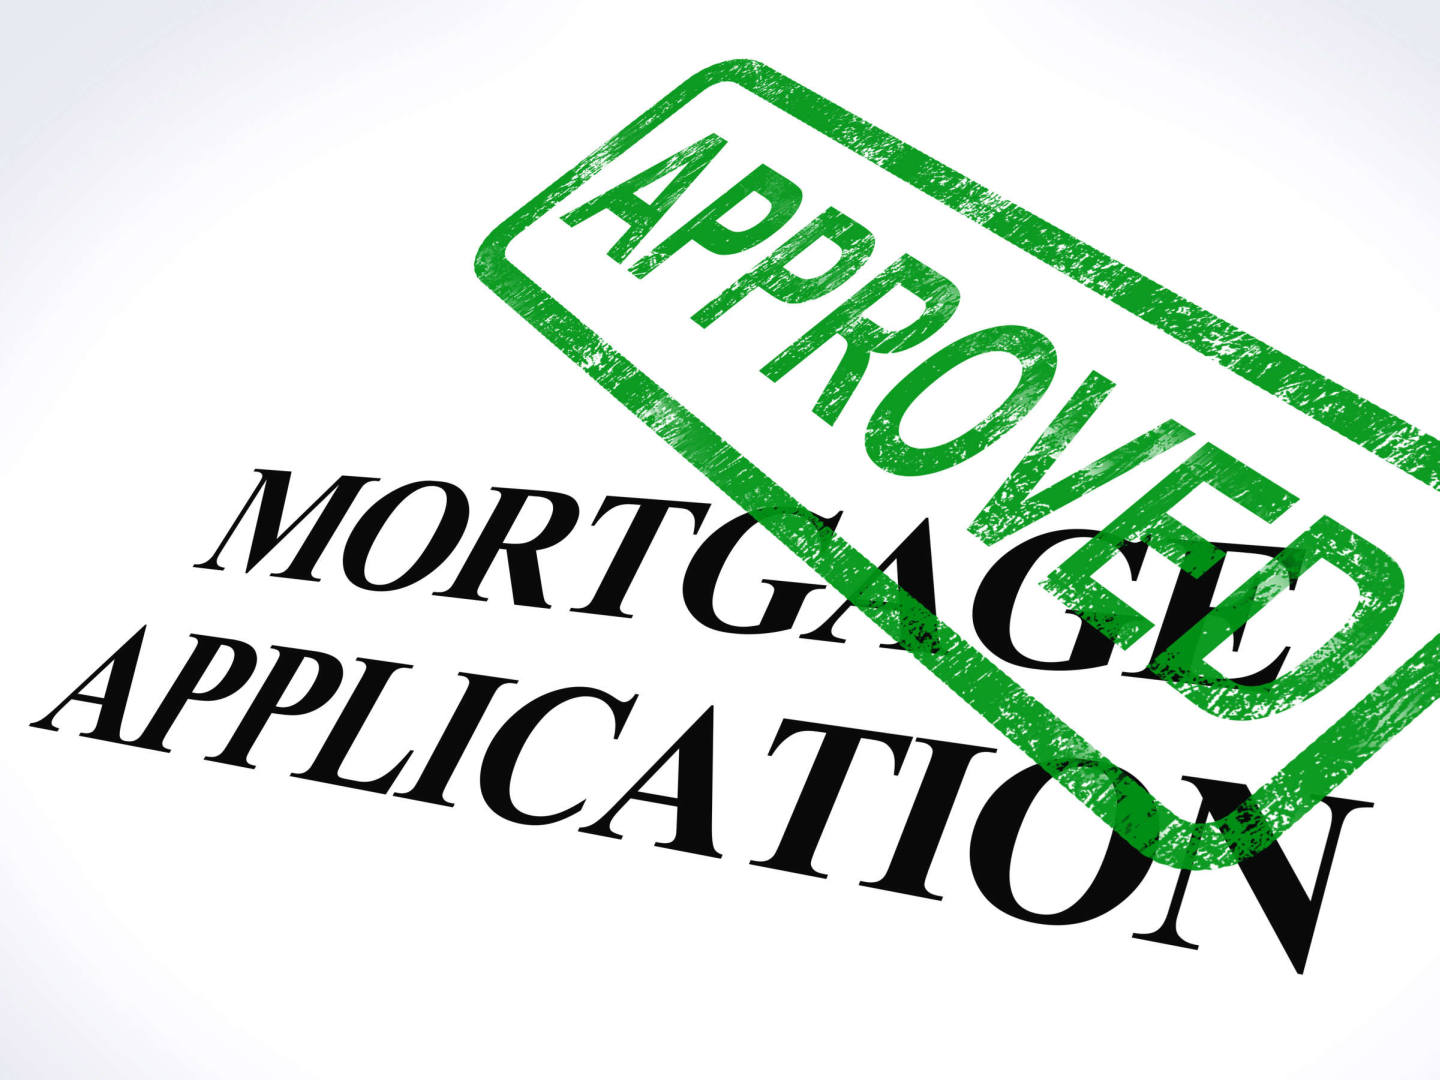 image of mortgage approval stamp